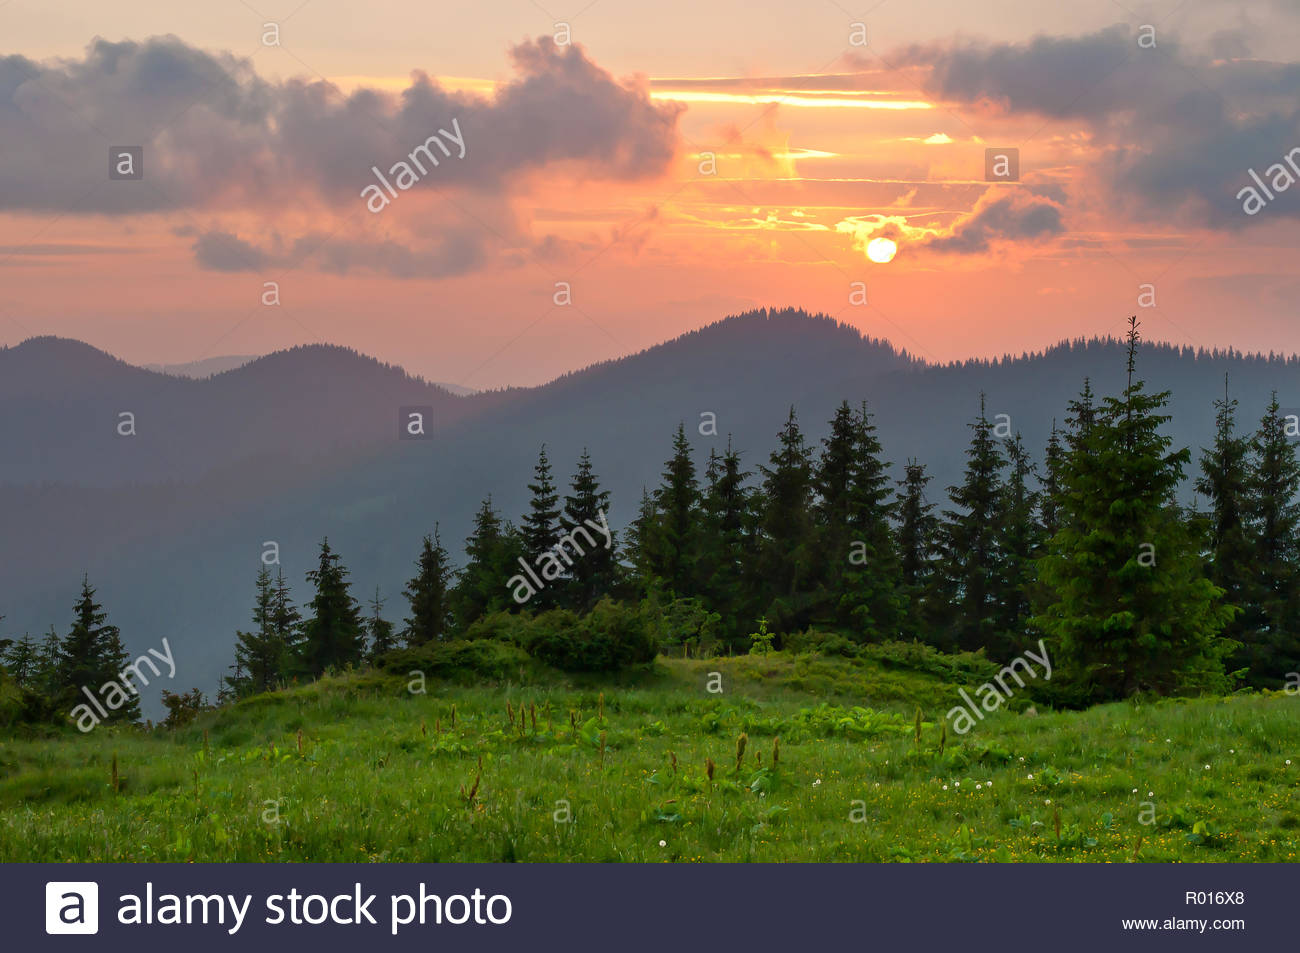 srpuce-and-pine-trees-on-a-lush-green-me